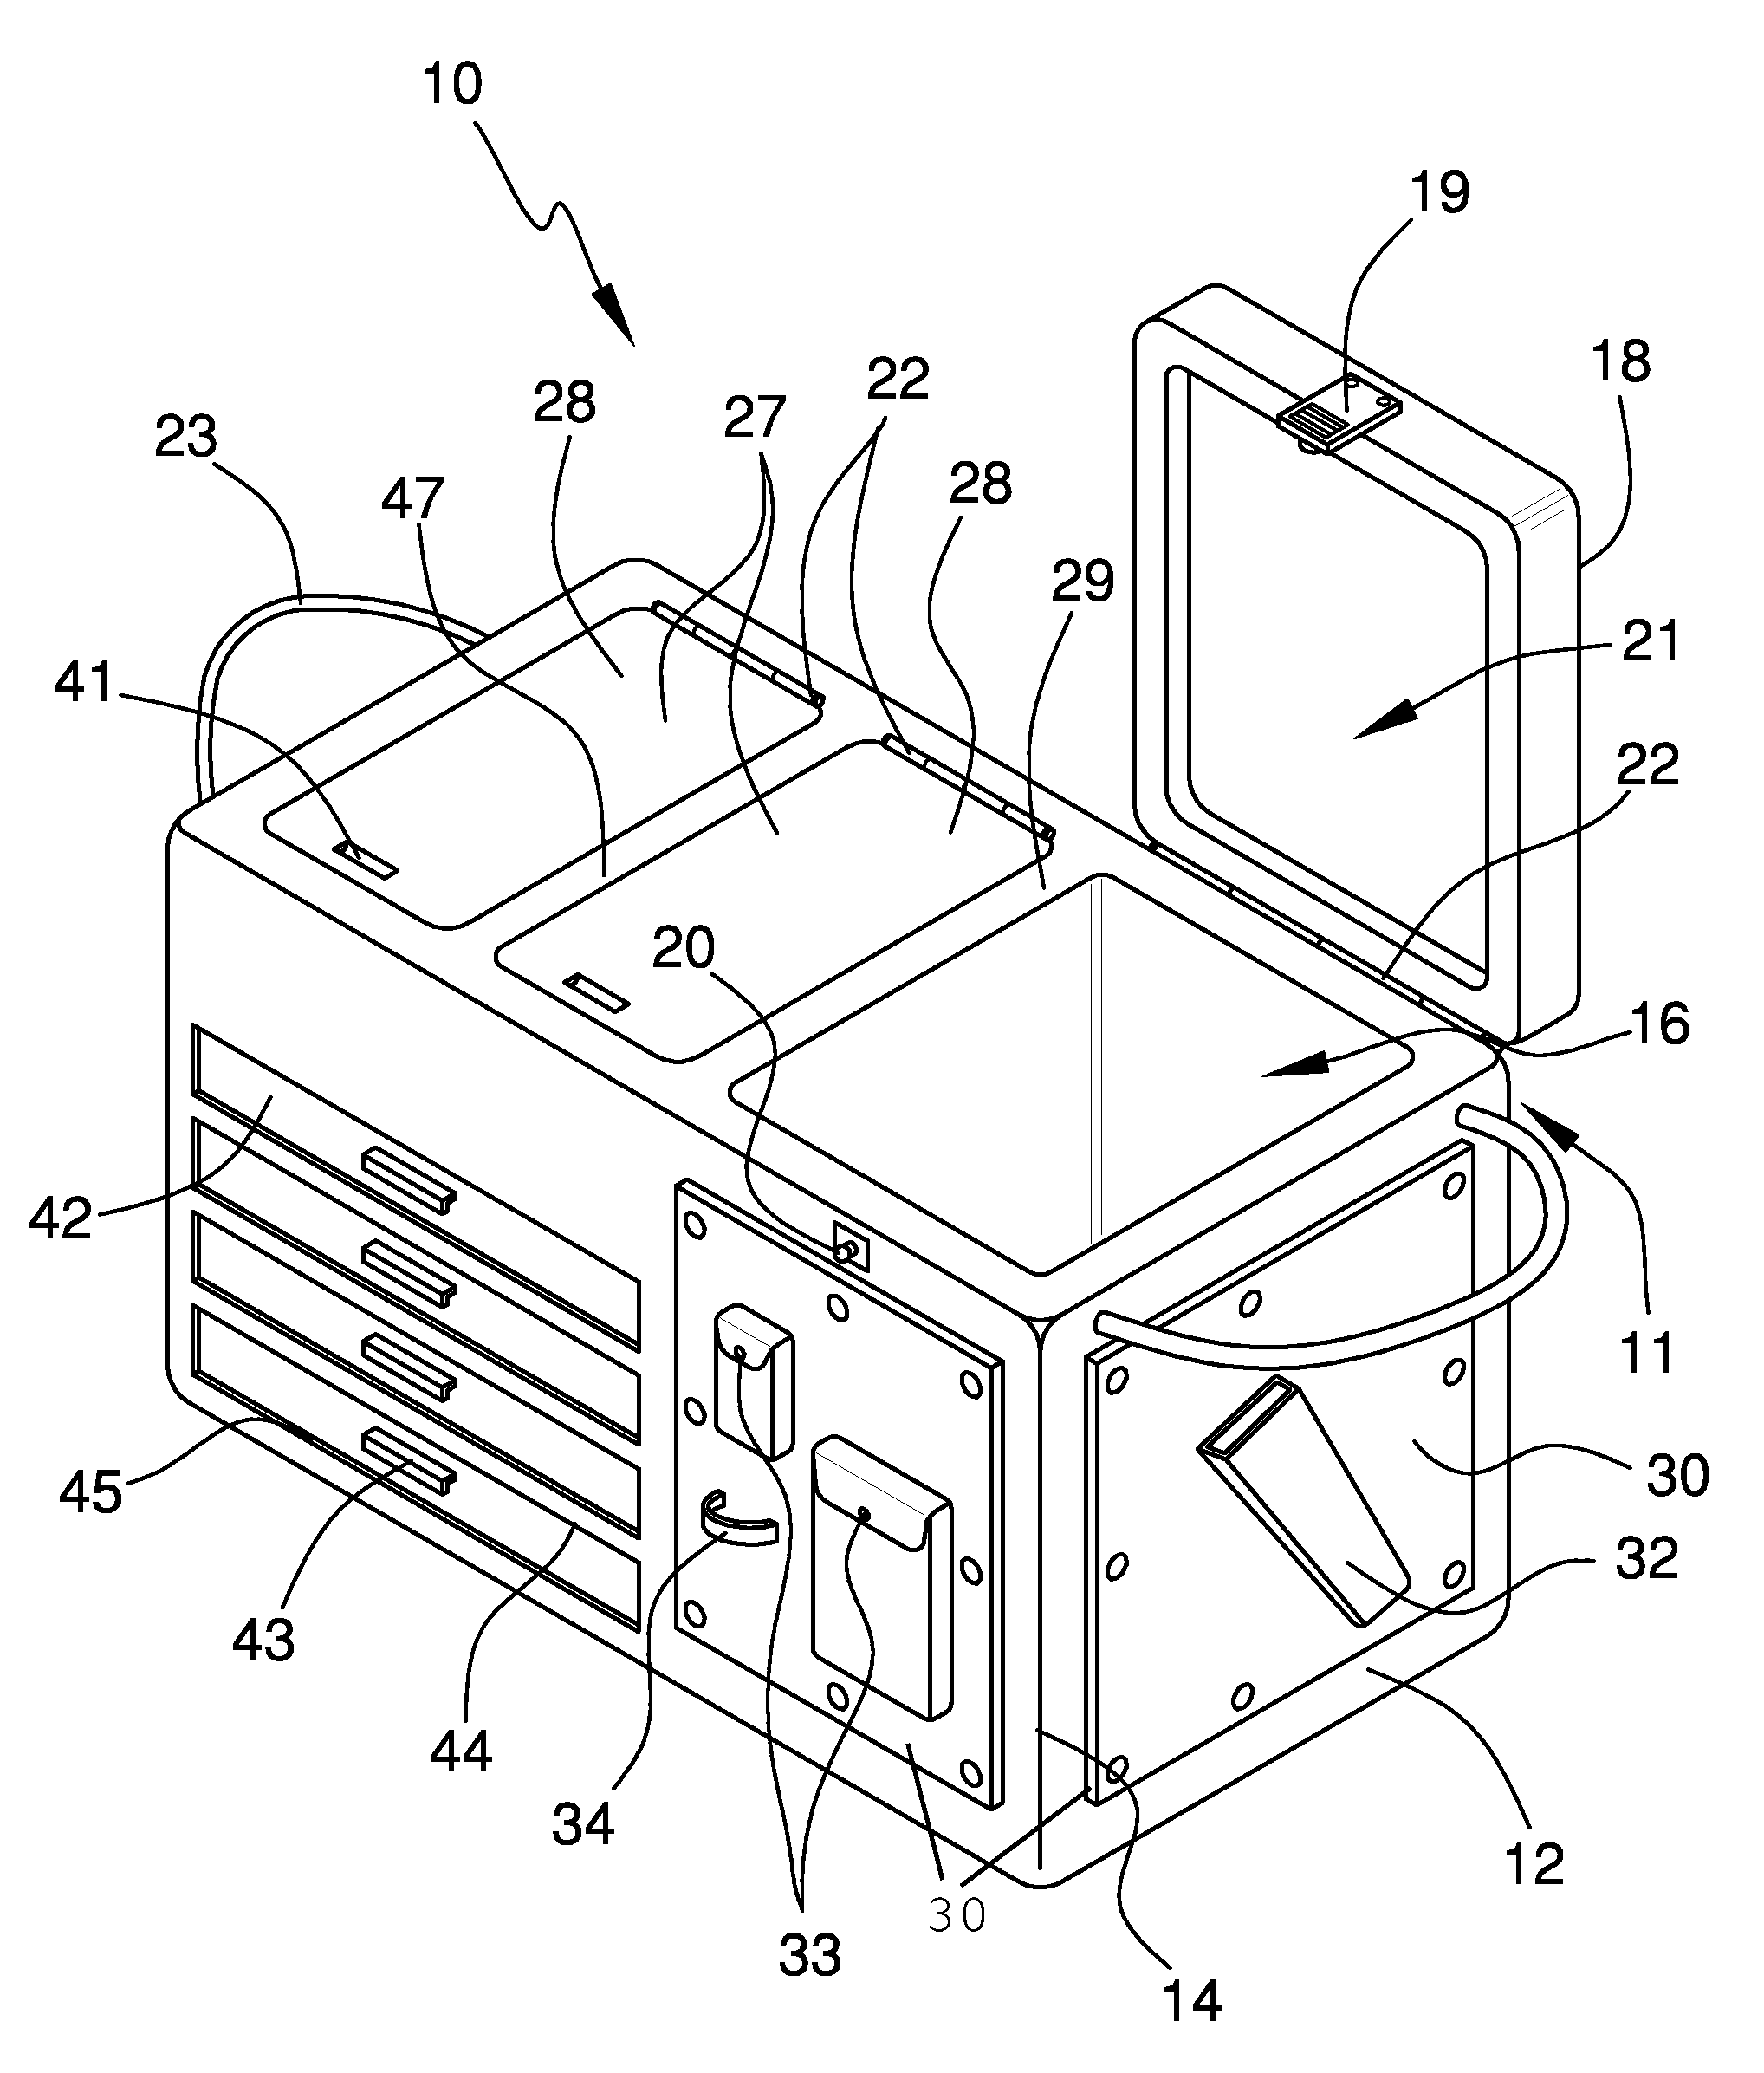 US07415794 20080826 D00000 patent us7415794 portable cooler and tackle box google patents 2001 hyundai xg300 fuse box location at n-0.co